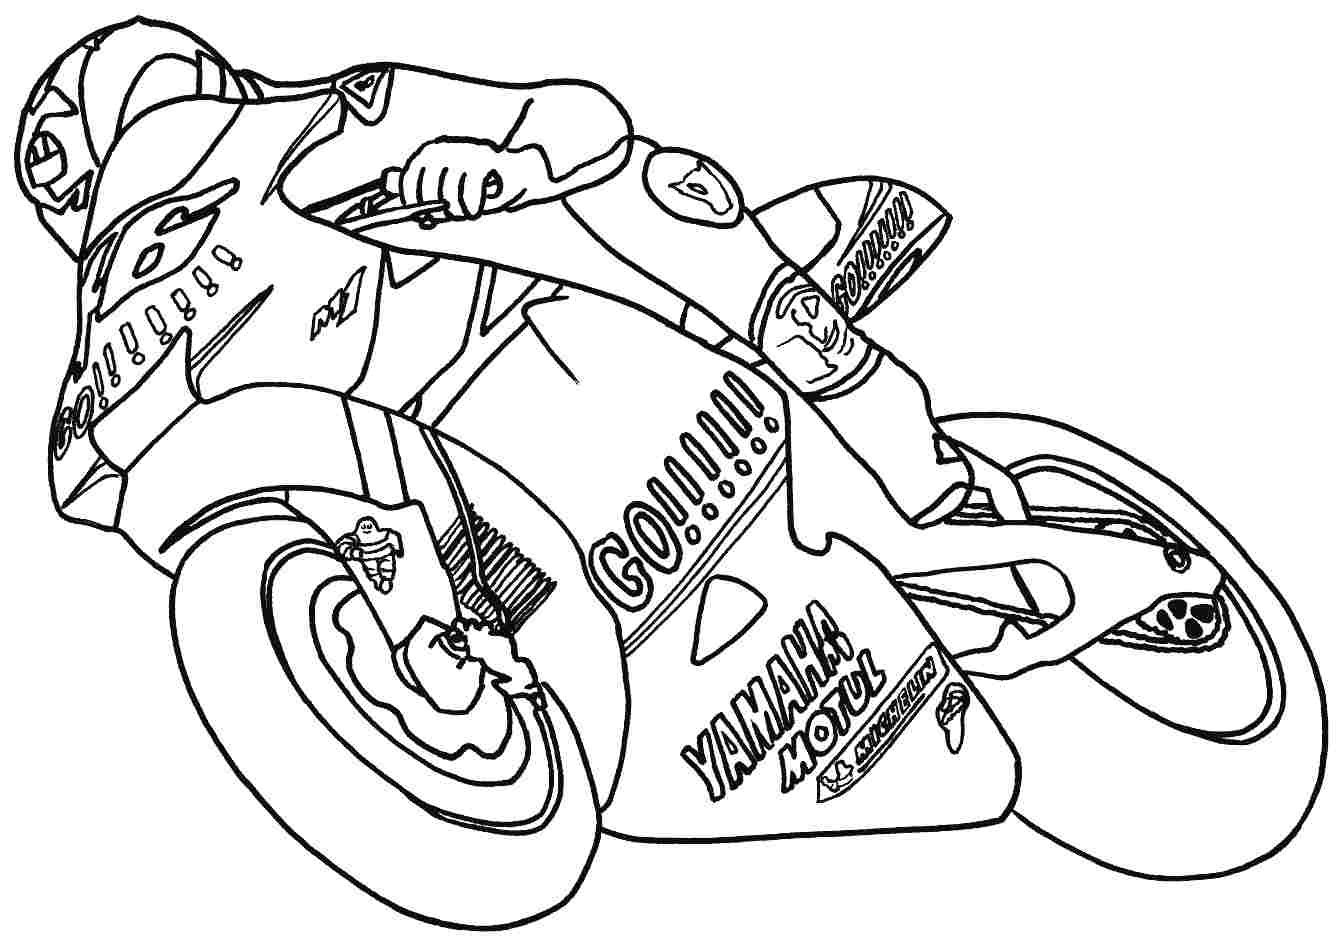 motorcycle color pages racing motorcycle coloring page free printable coloring pages color motorcycle